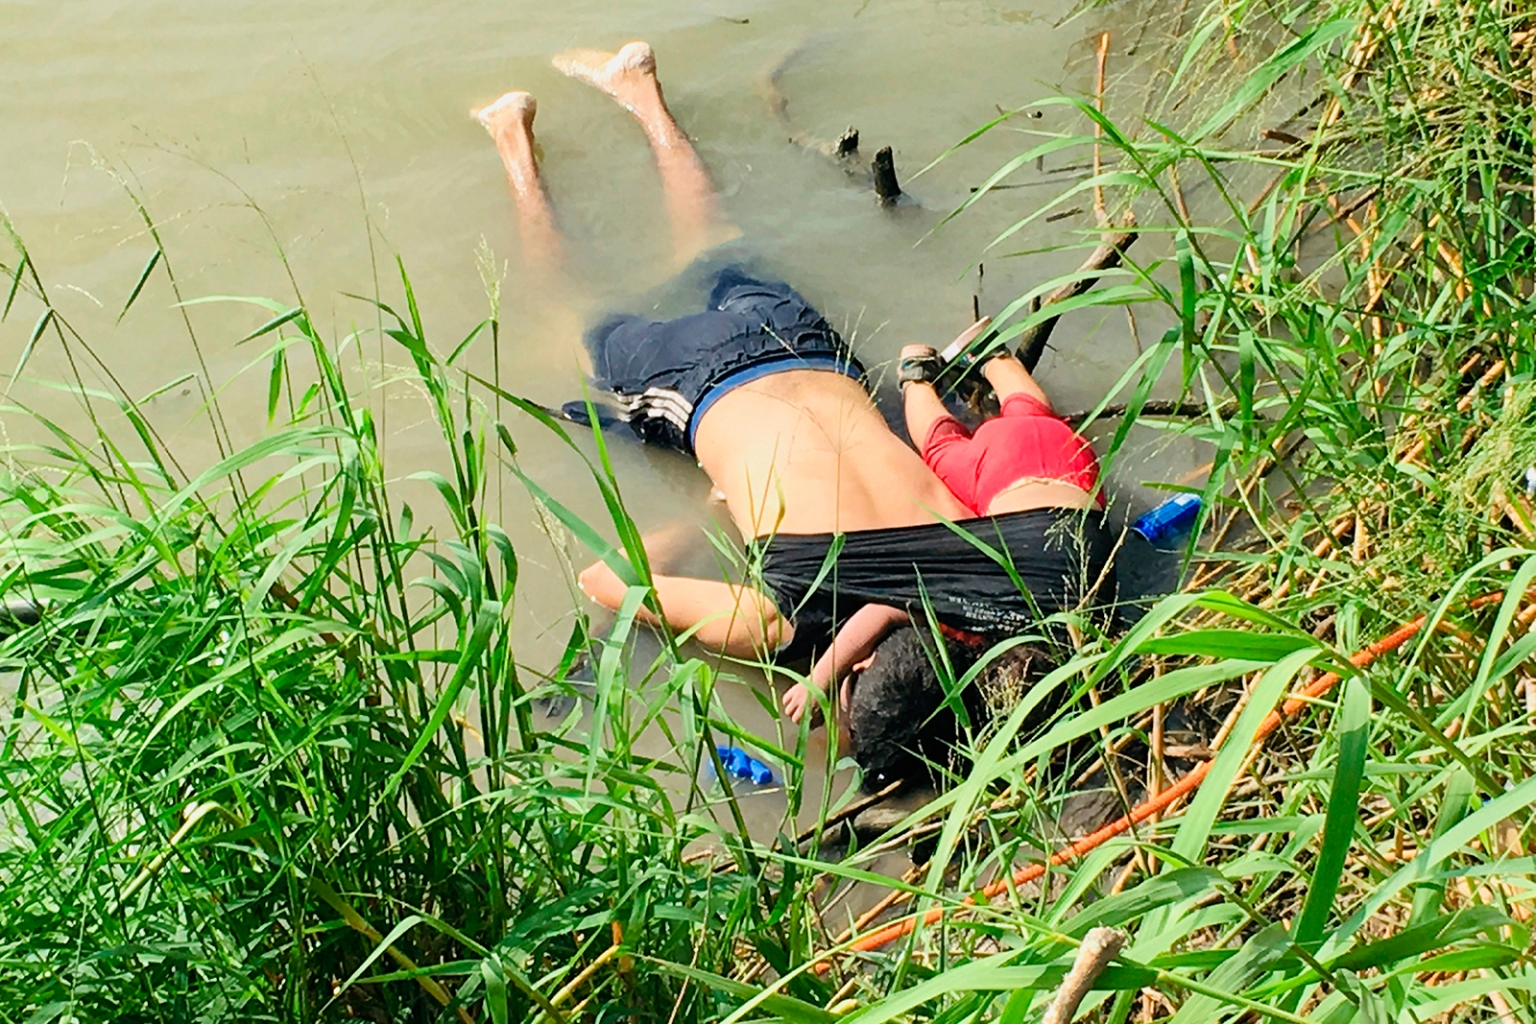 The bodies of Salvadoran migrant Oscar Alberto Martínez Ramírez and his nearly 2-year-old daughter Valeria rest on the bank of the Rio Grande in Matamoros, Mexico, on June 24, after they drowned trying to cross the river to Brownsville, Texas. Julia Le Duc/La Jornada/AP